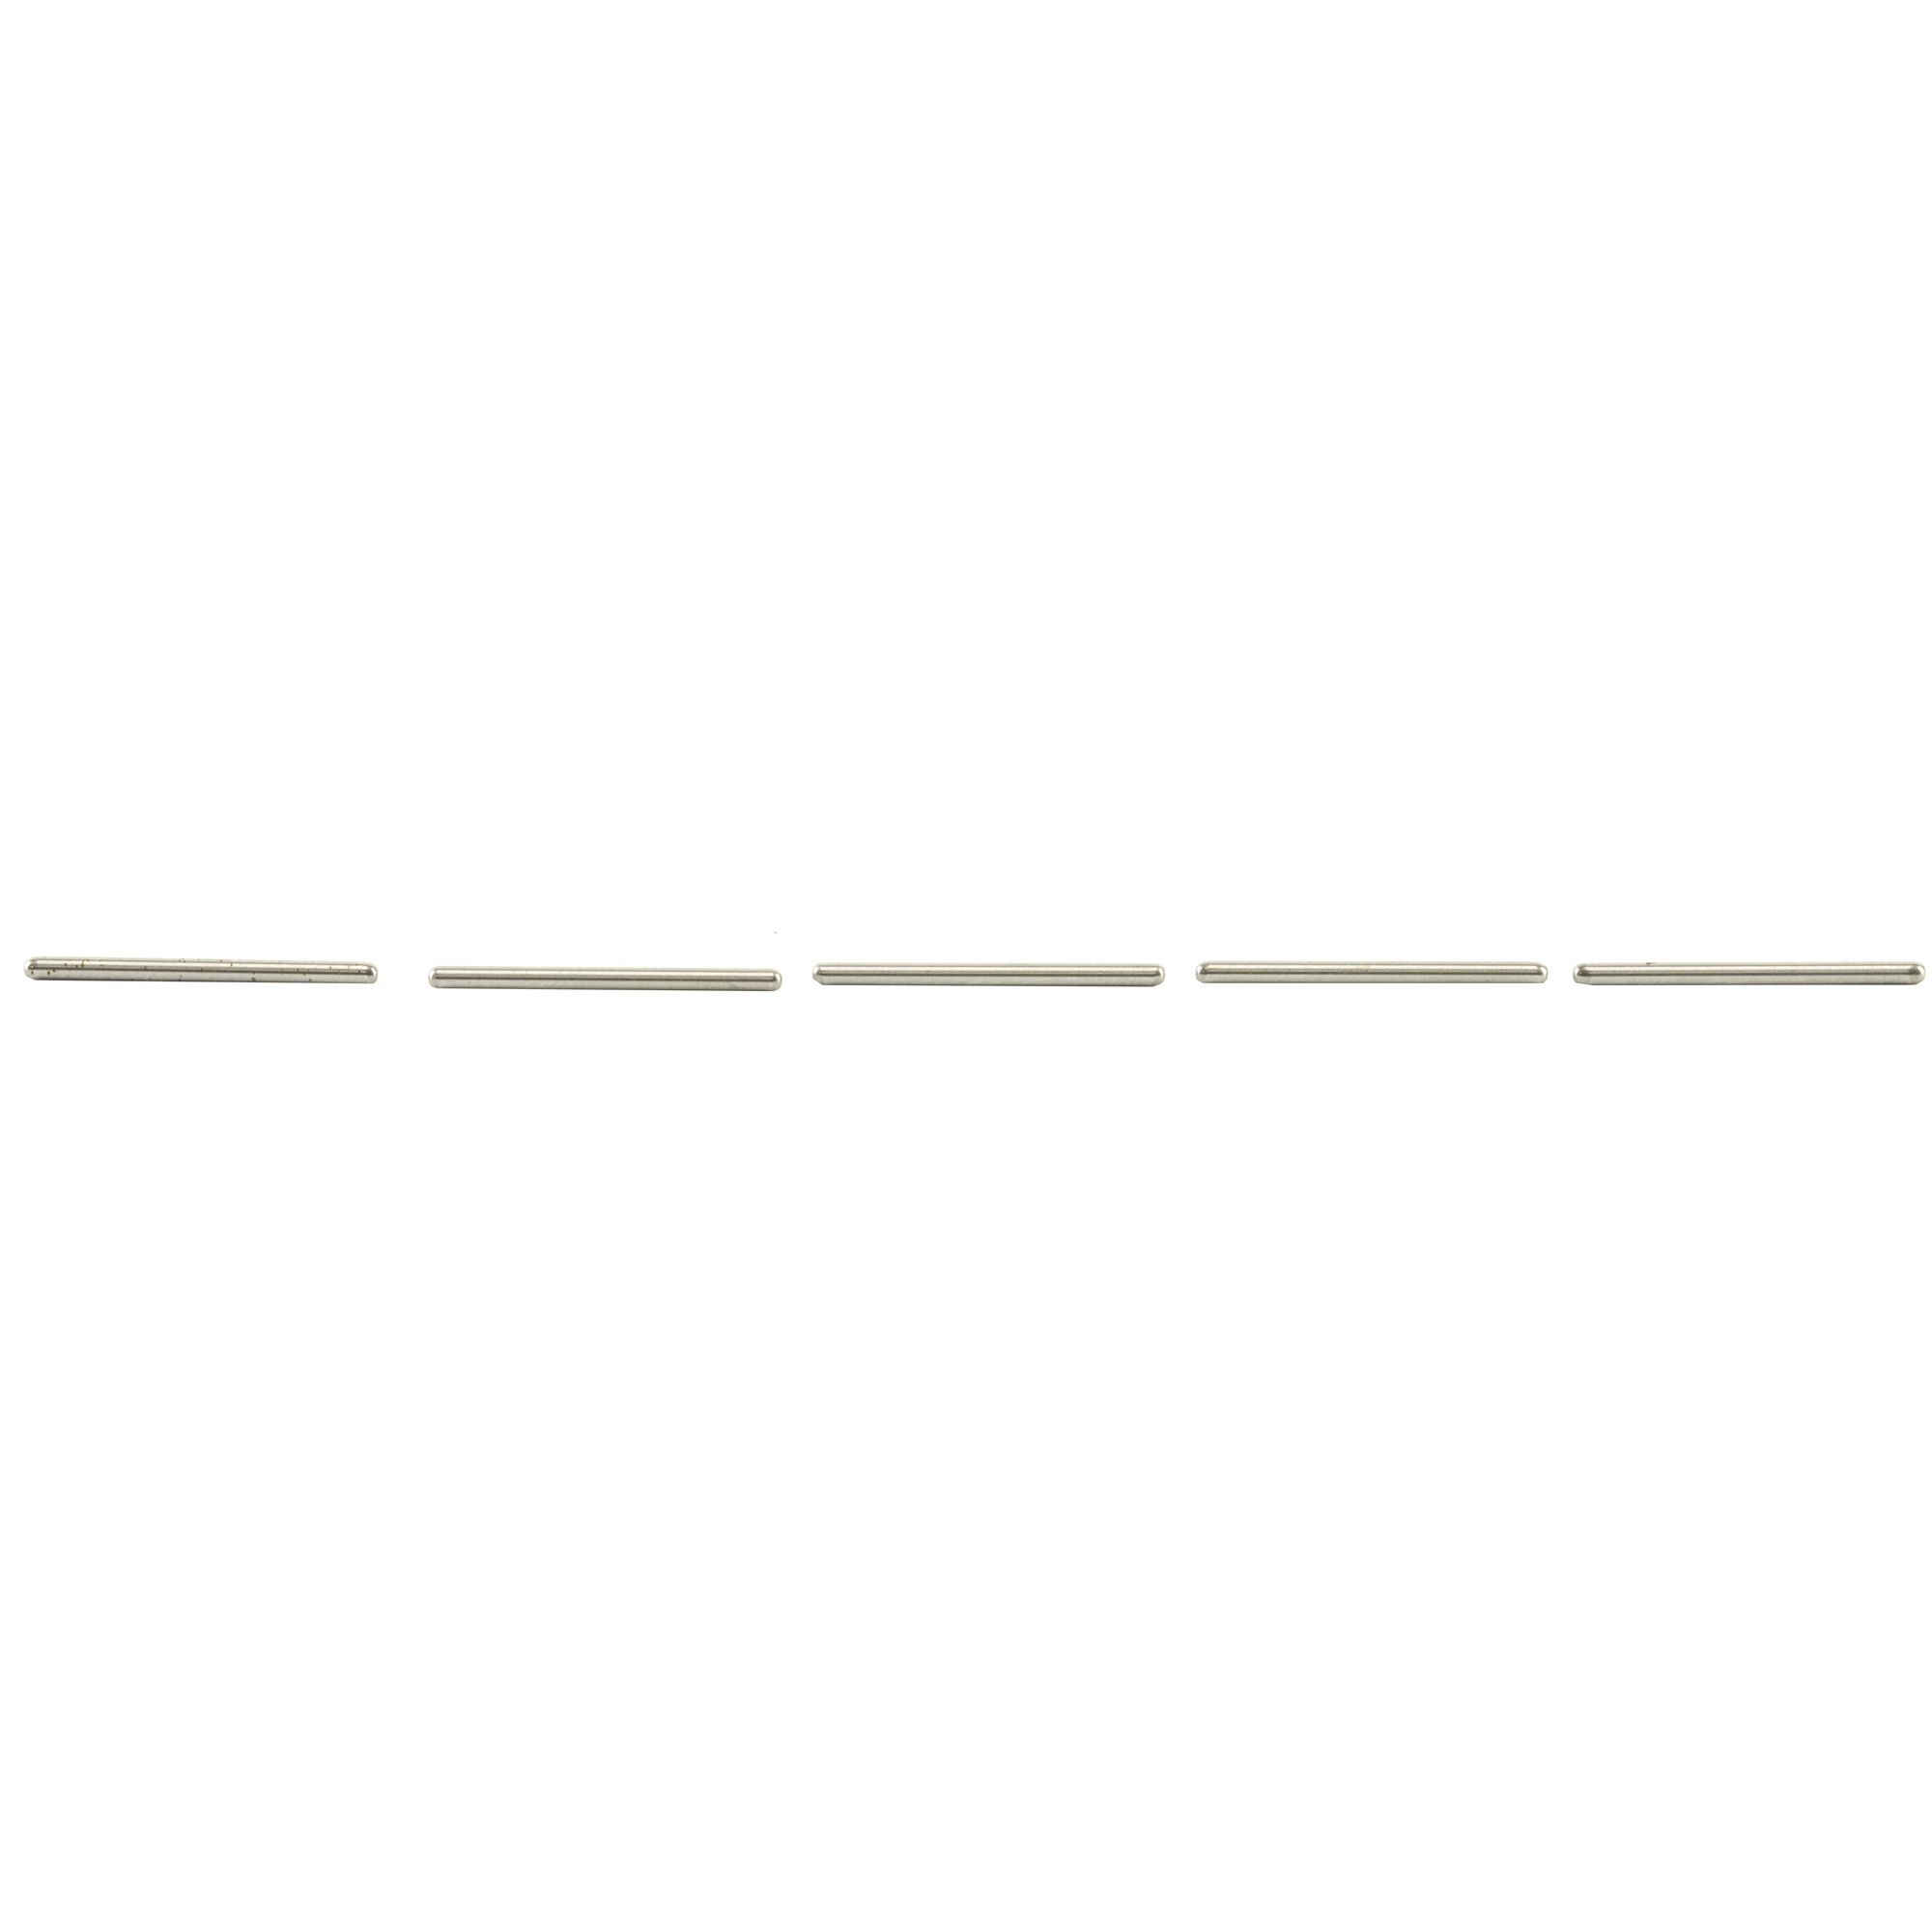 Rcbs Decapping Pin 5-pack Small